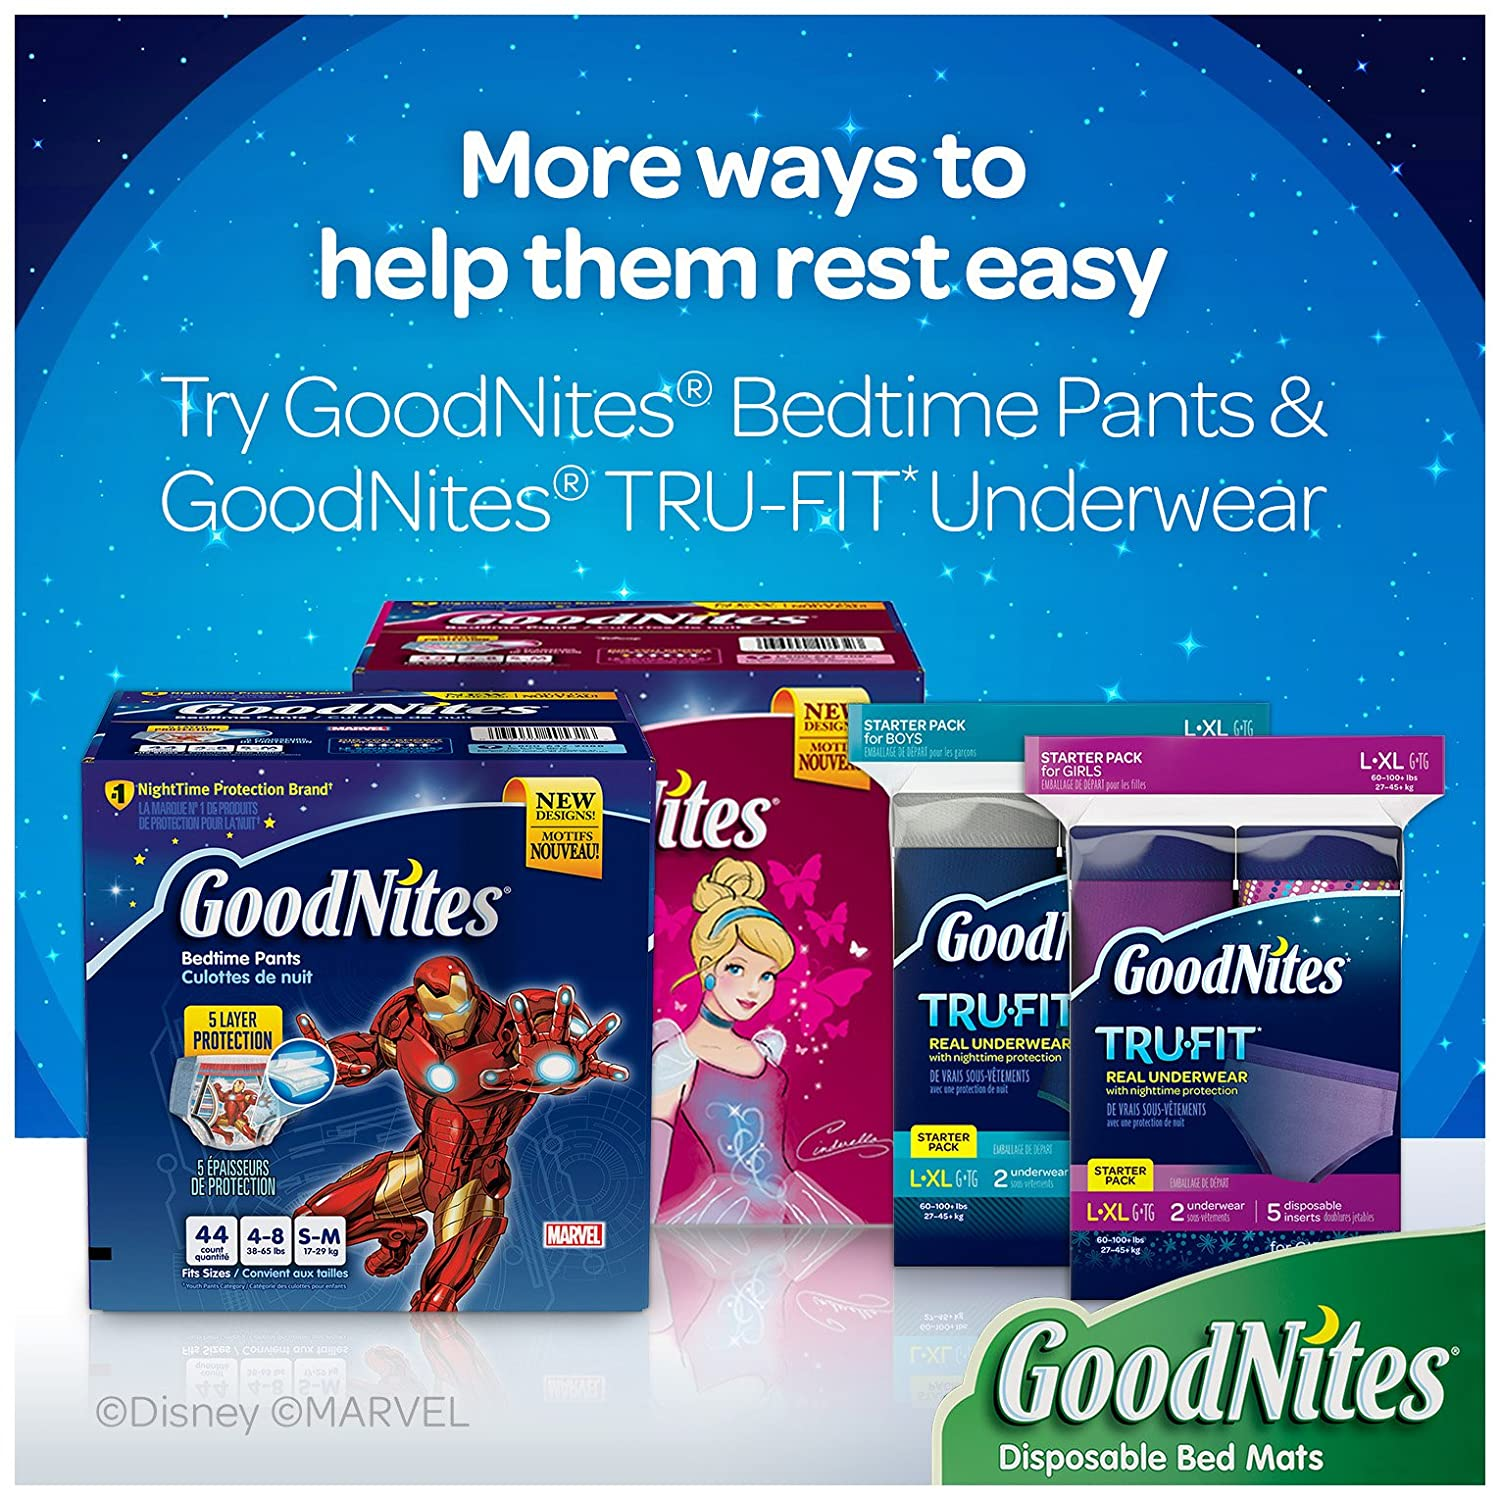 GoodNites Disposable Bed Mats, 9 Count by GoodNites: Amazon.es: Salud y cuidado personal